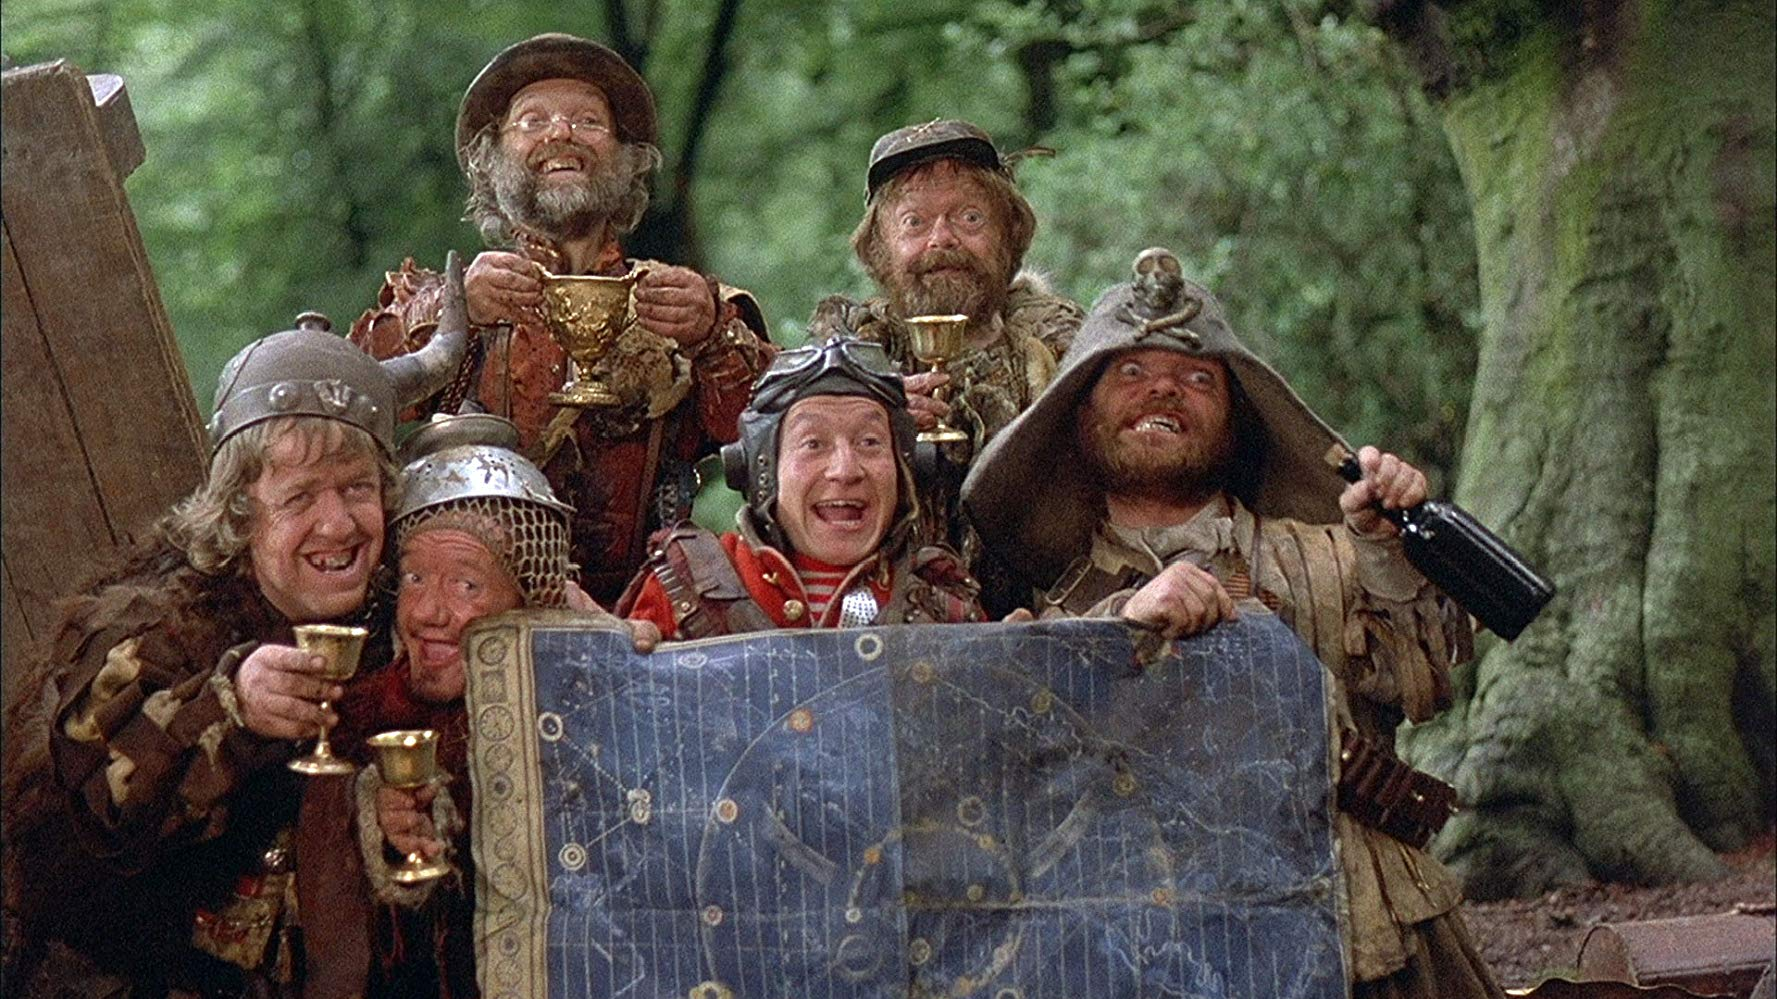 The Time Bandits - (l to r) Mike Edmonds, Kenny Baker, Malcolm Dixon, David Rappaport, Tiny Ross and Jack Purvis in Time Bandits (1981)